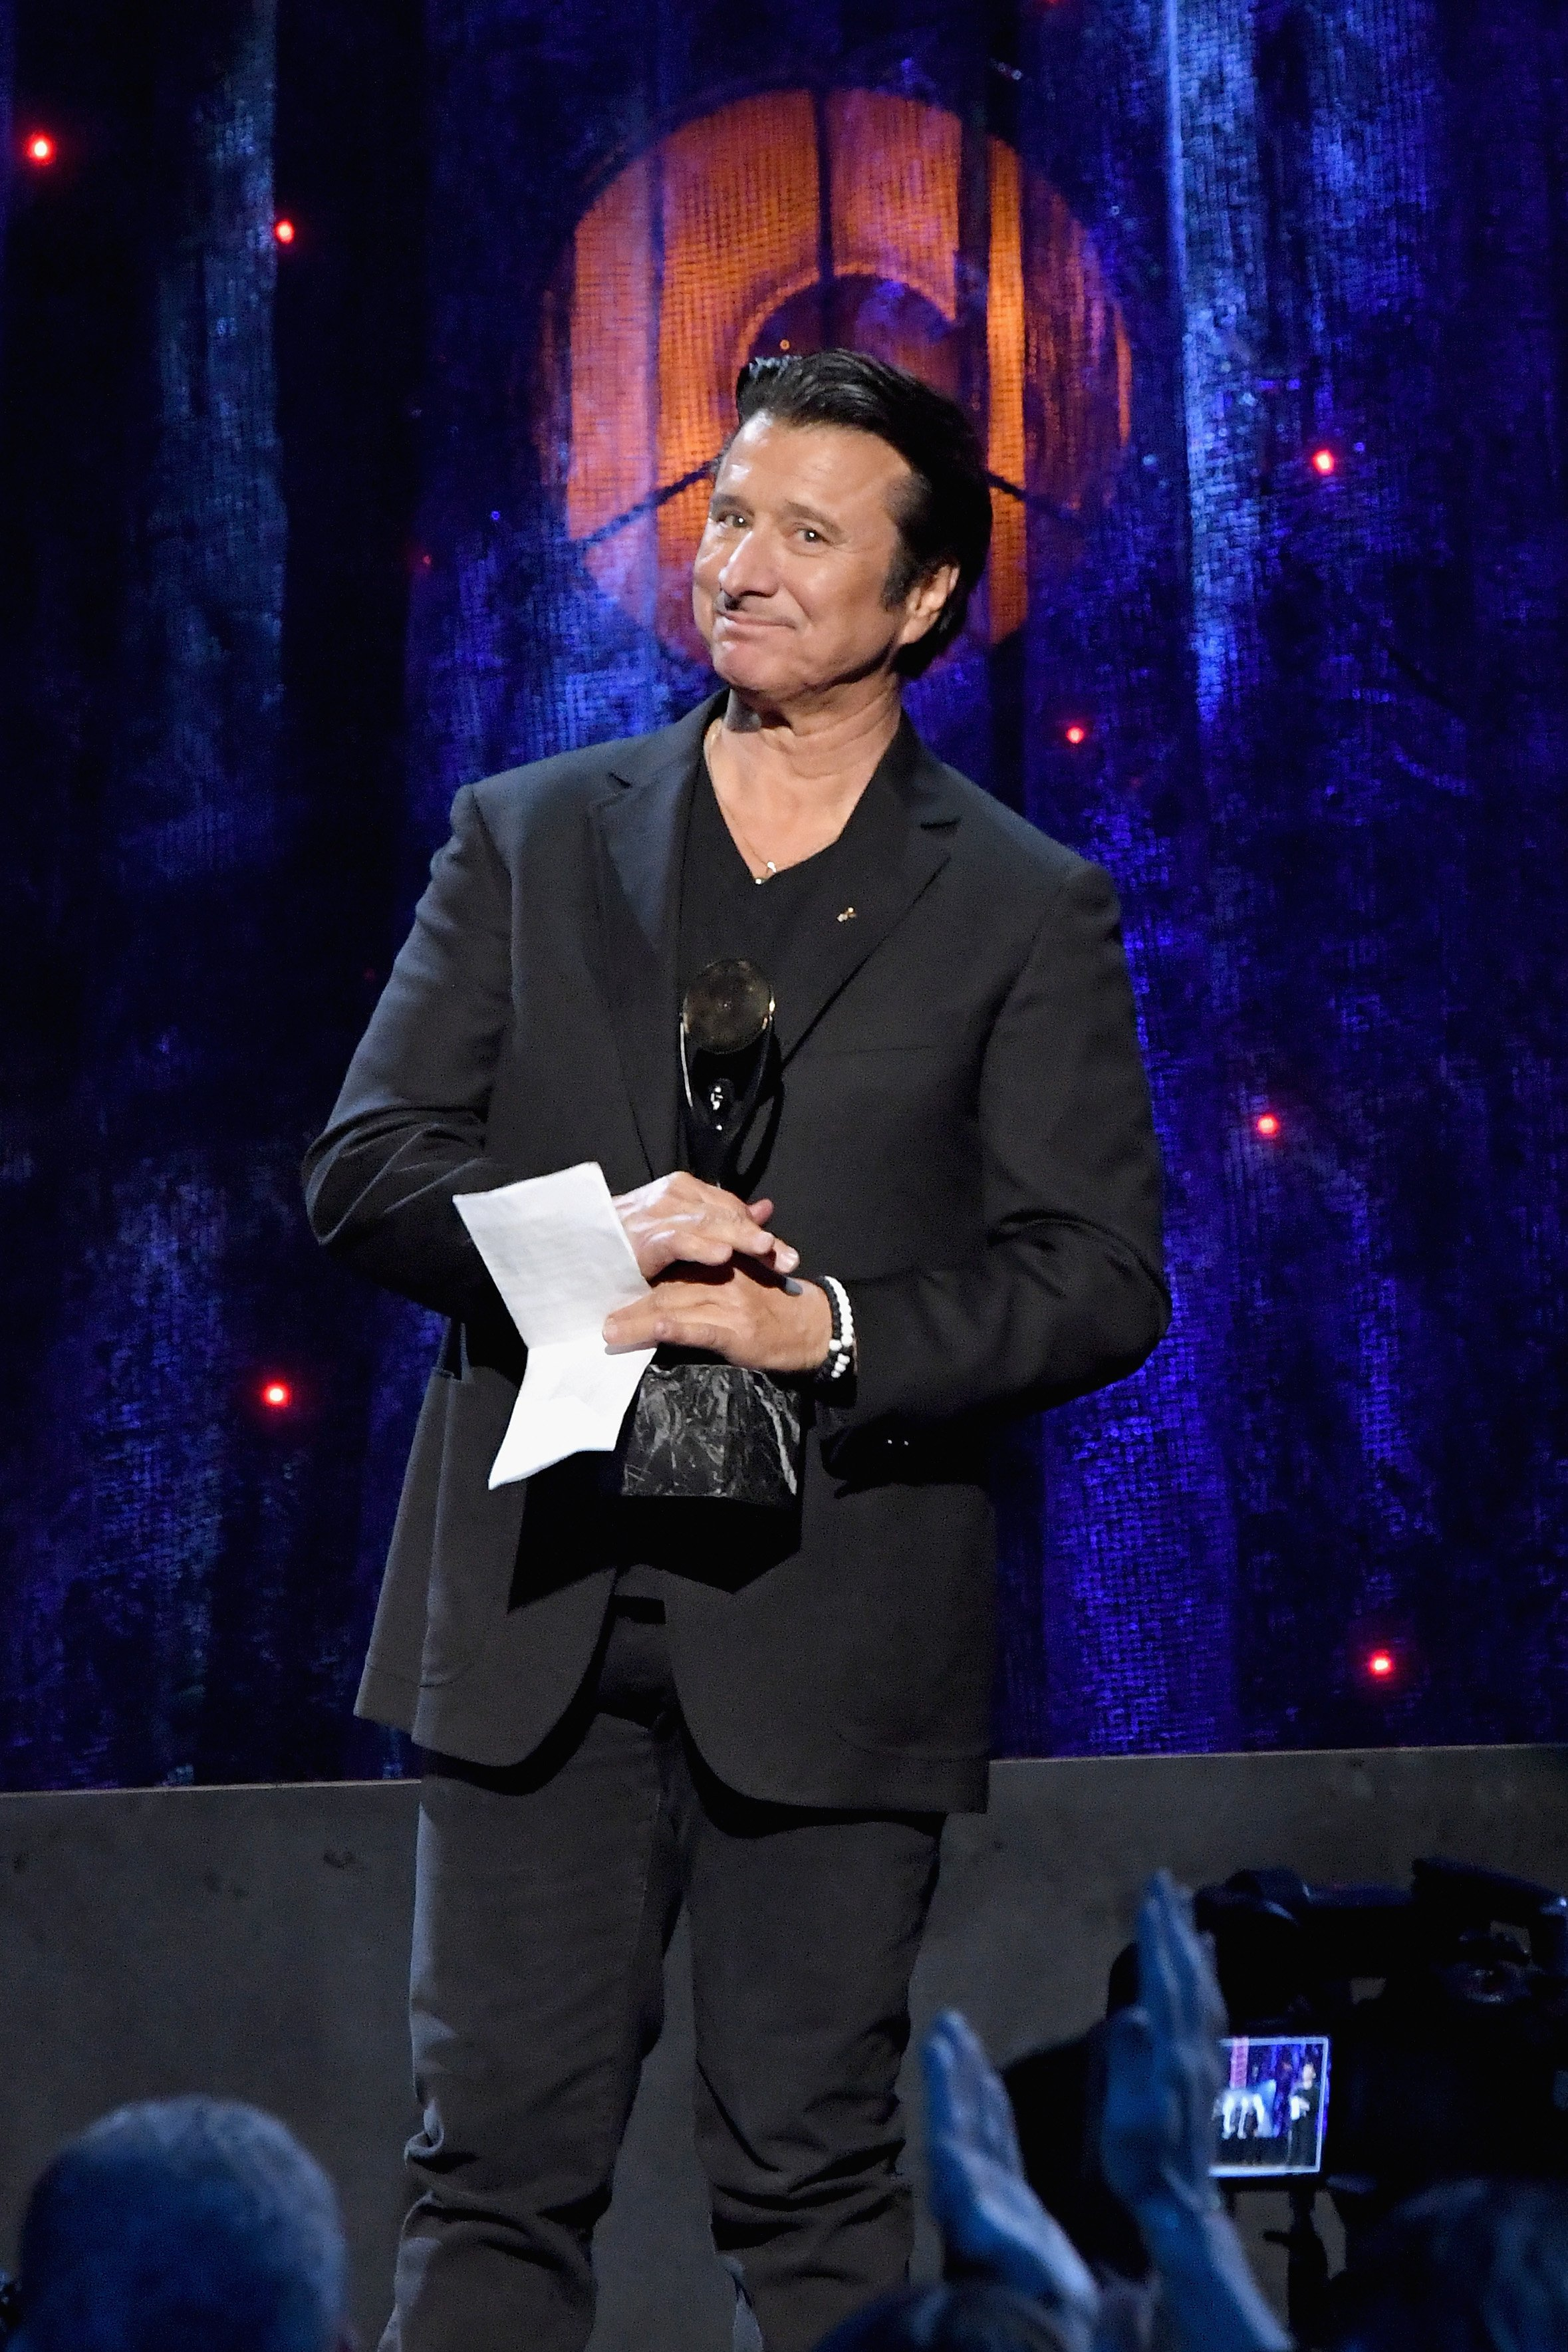 Steve Perry bei der Rock & Roll Hall Of Fame Induction Zeremonie, 2017 | Quelle: Getty Images